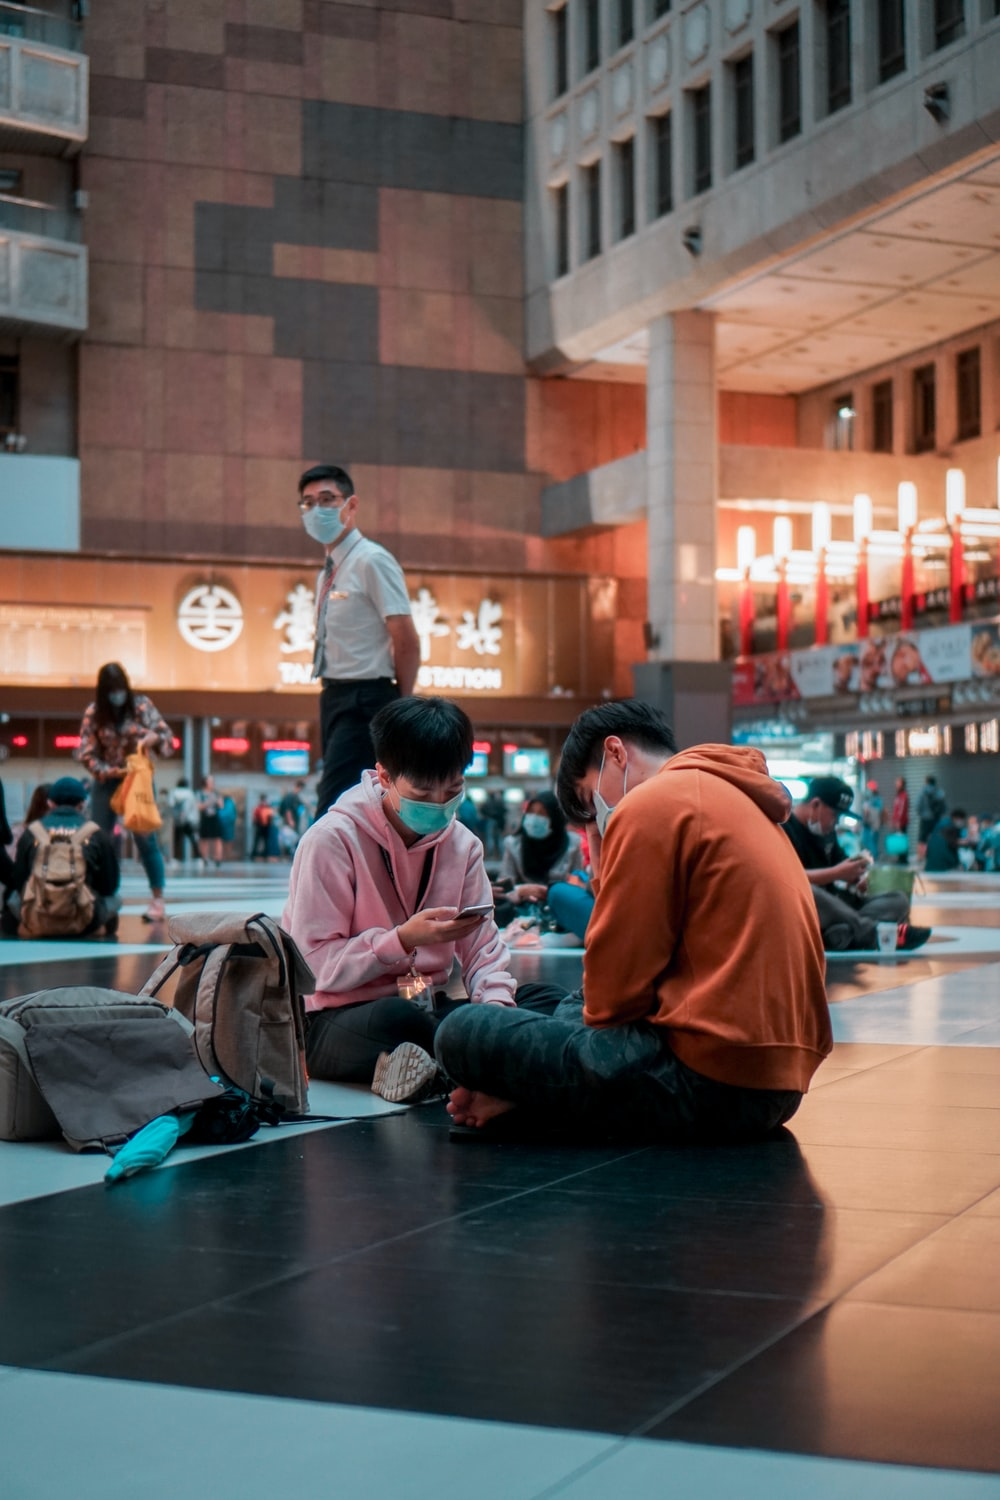 man in red long sleeve shirt sitting on floor